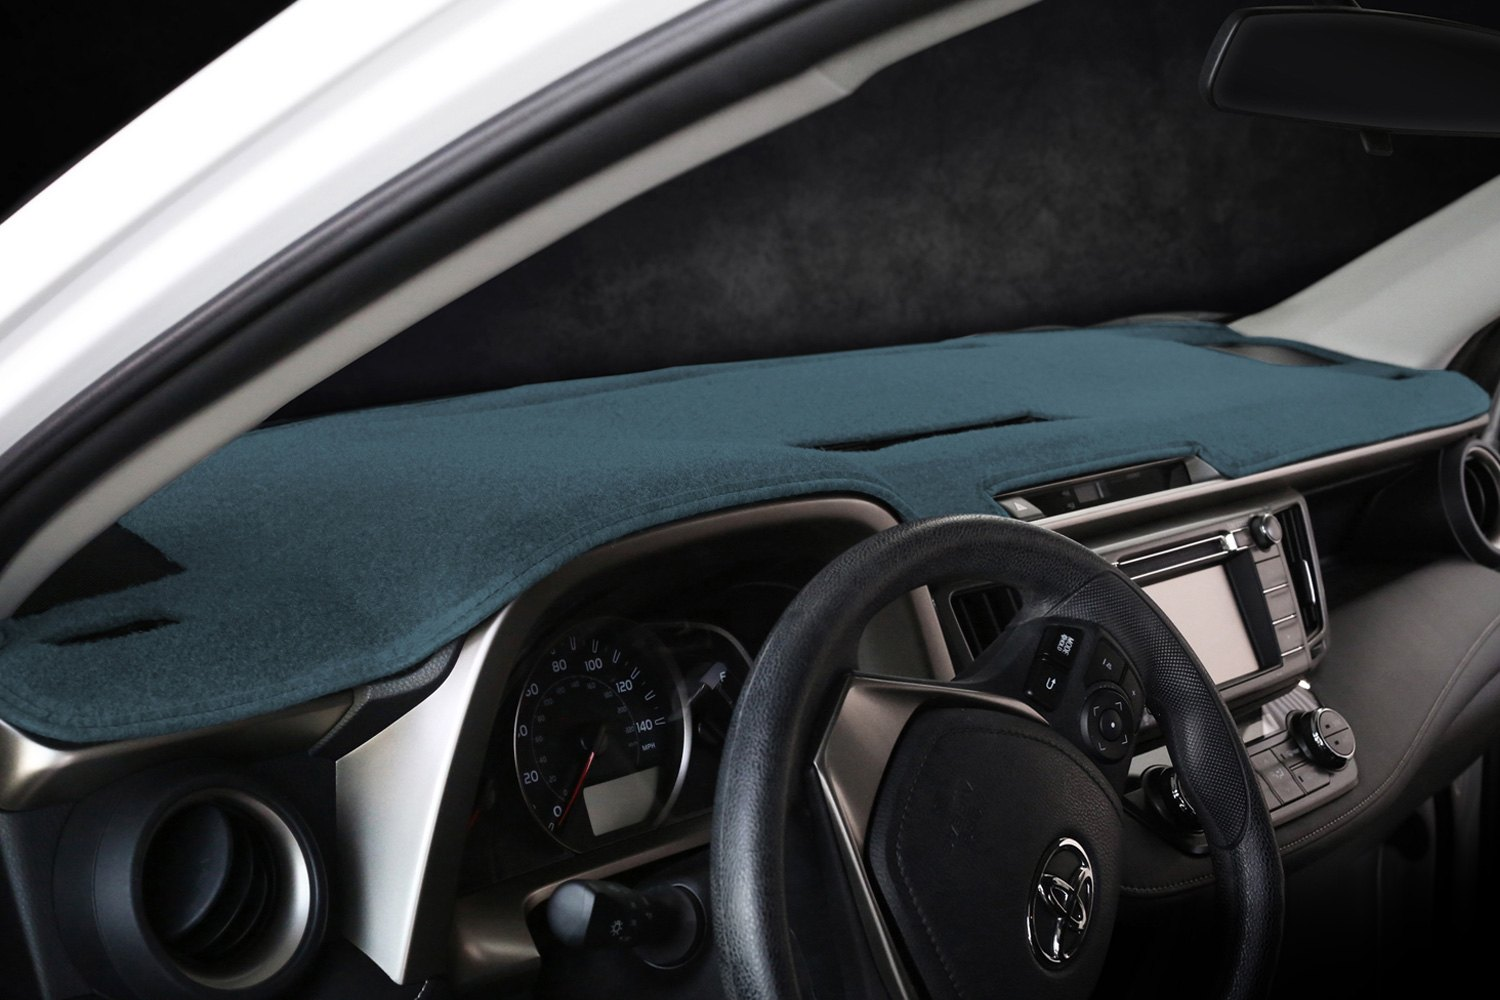 Dark Blue Molded Carpet Coverking Custom Fit Dashcovers for Select Toyota Camry Models